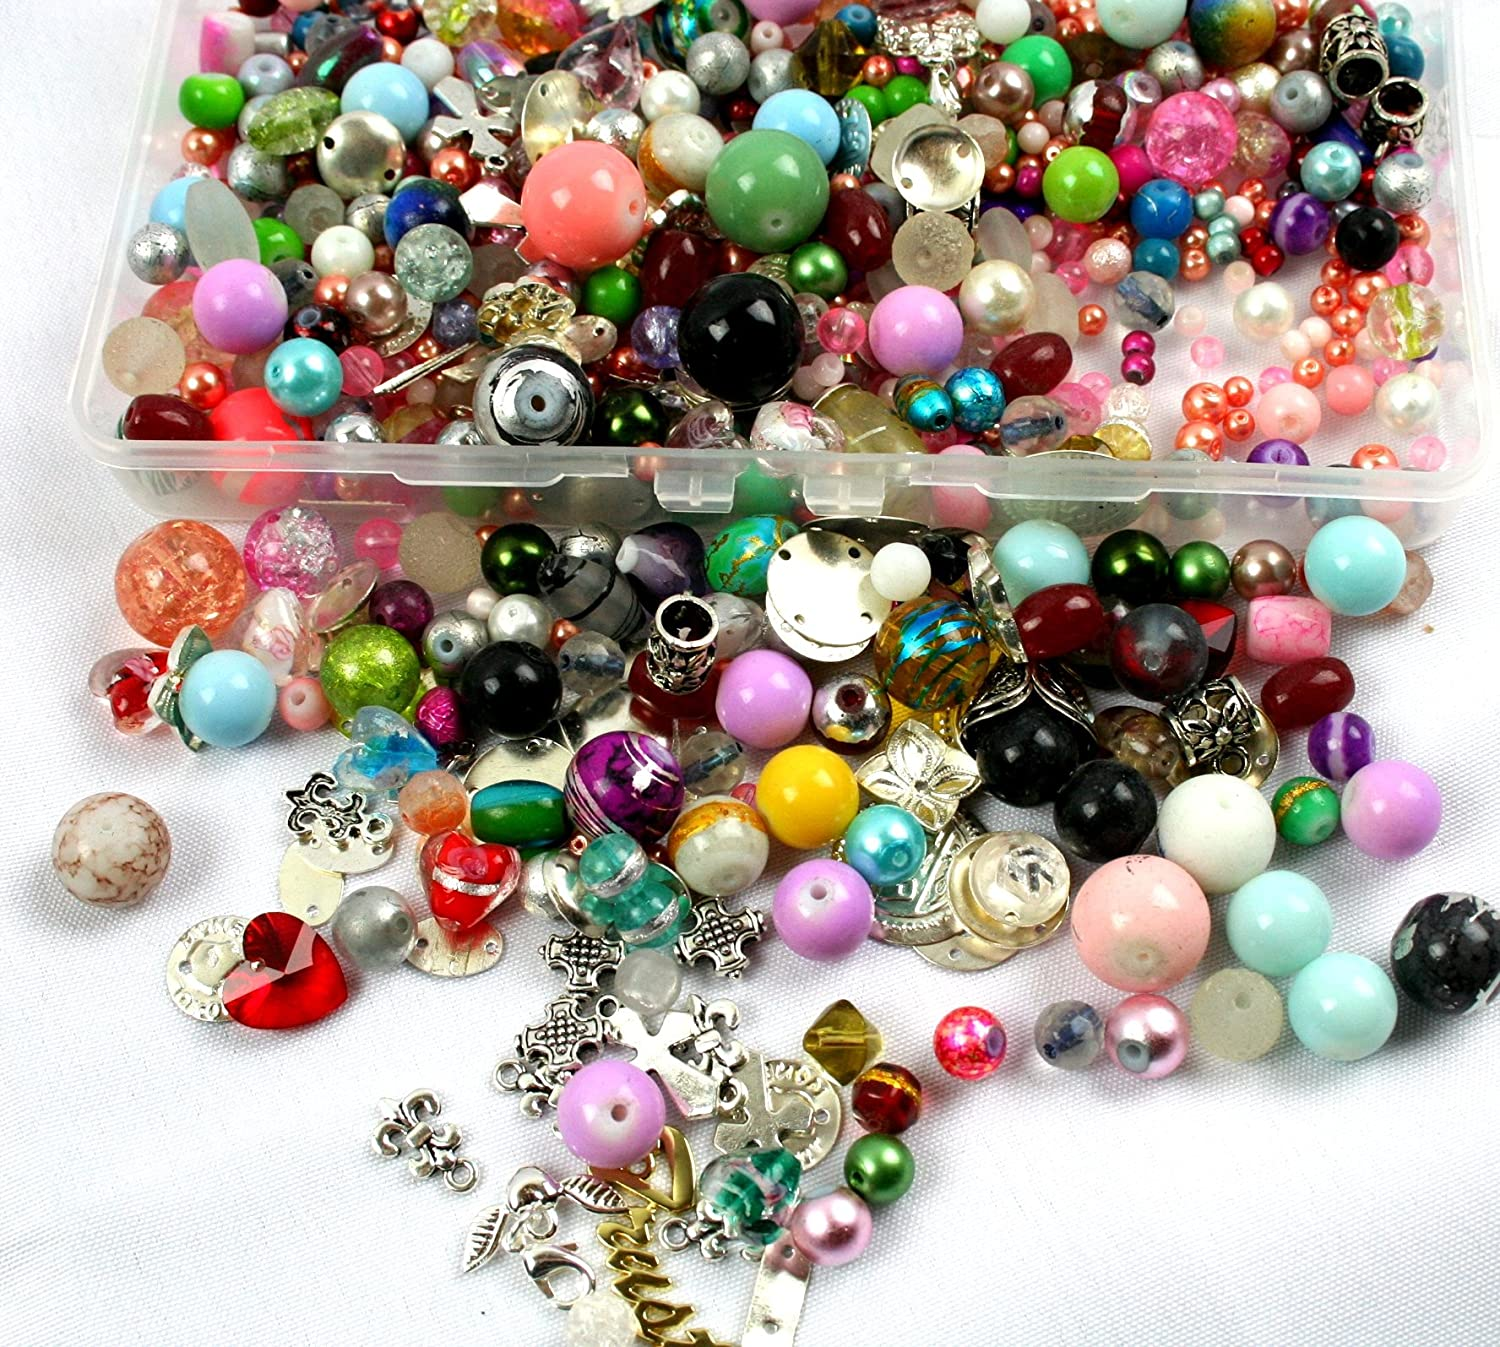 star store glass color in jewelry custom catalogue bulk htm buy bracelets wholesale beads umx bead necklaces and fruit